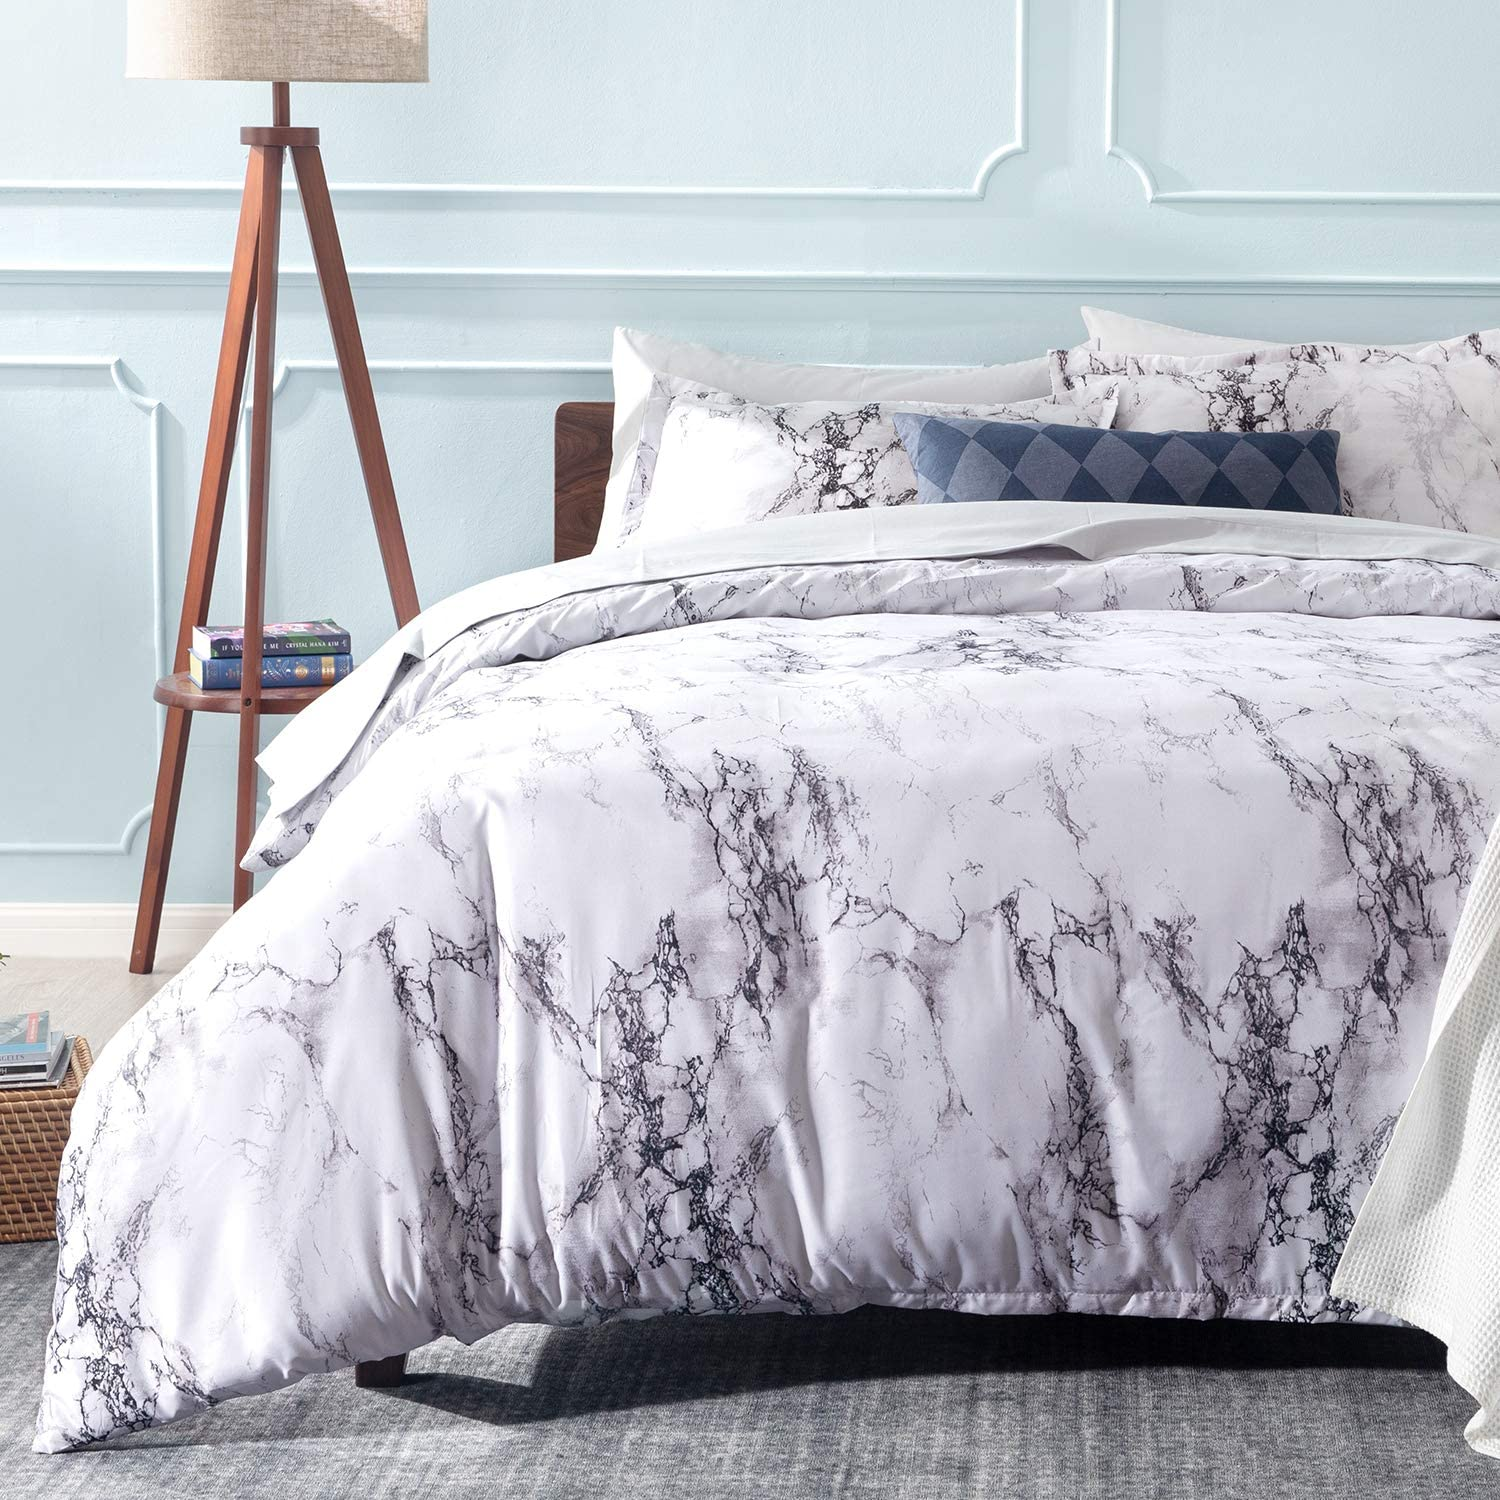 Bedsure Printed Duvet Cover Set King Size £9.49 with code 3ZLTEWUF @ Amazon